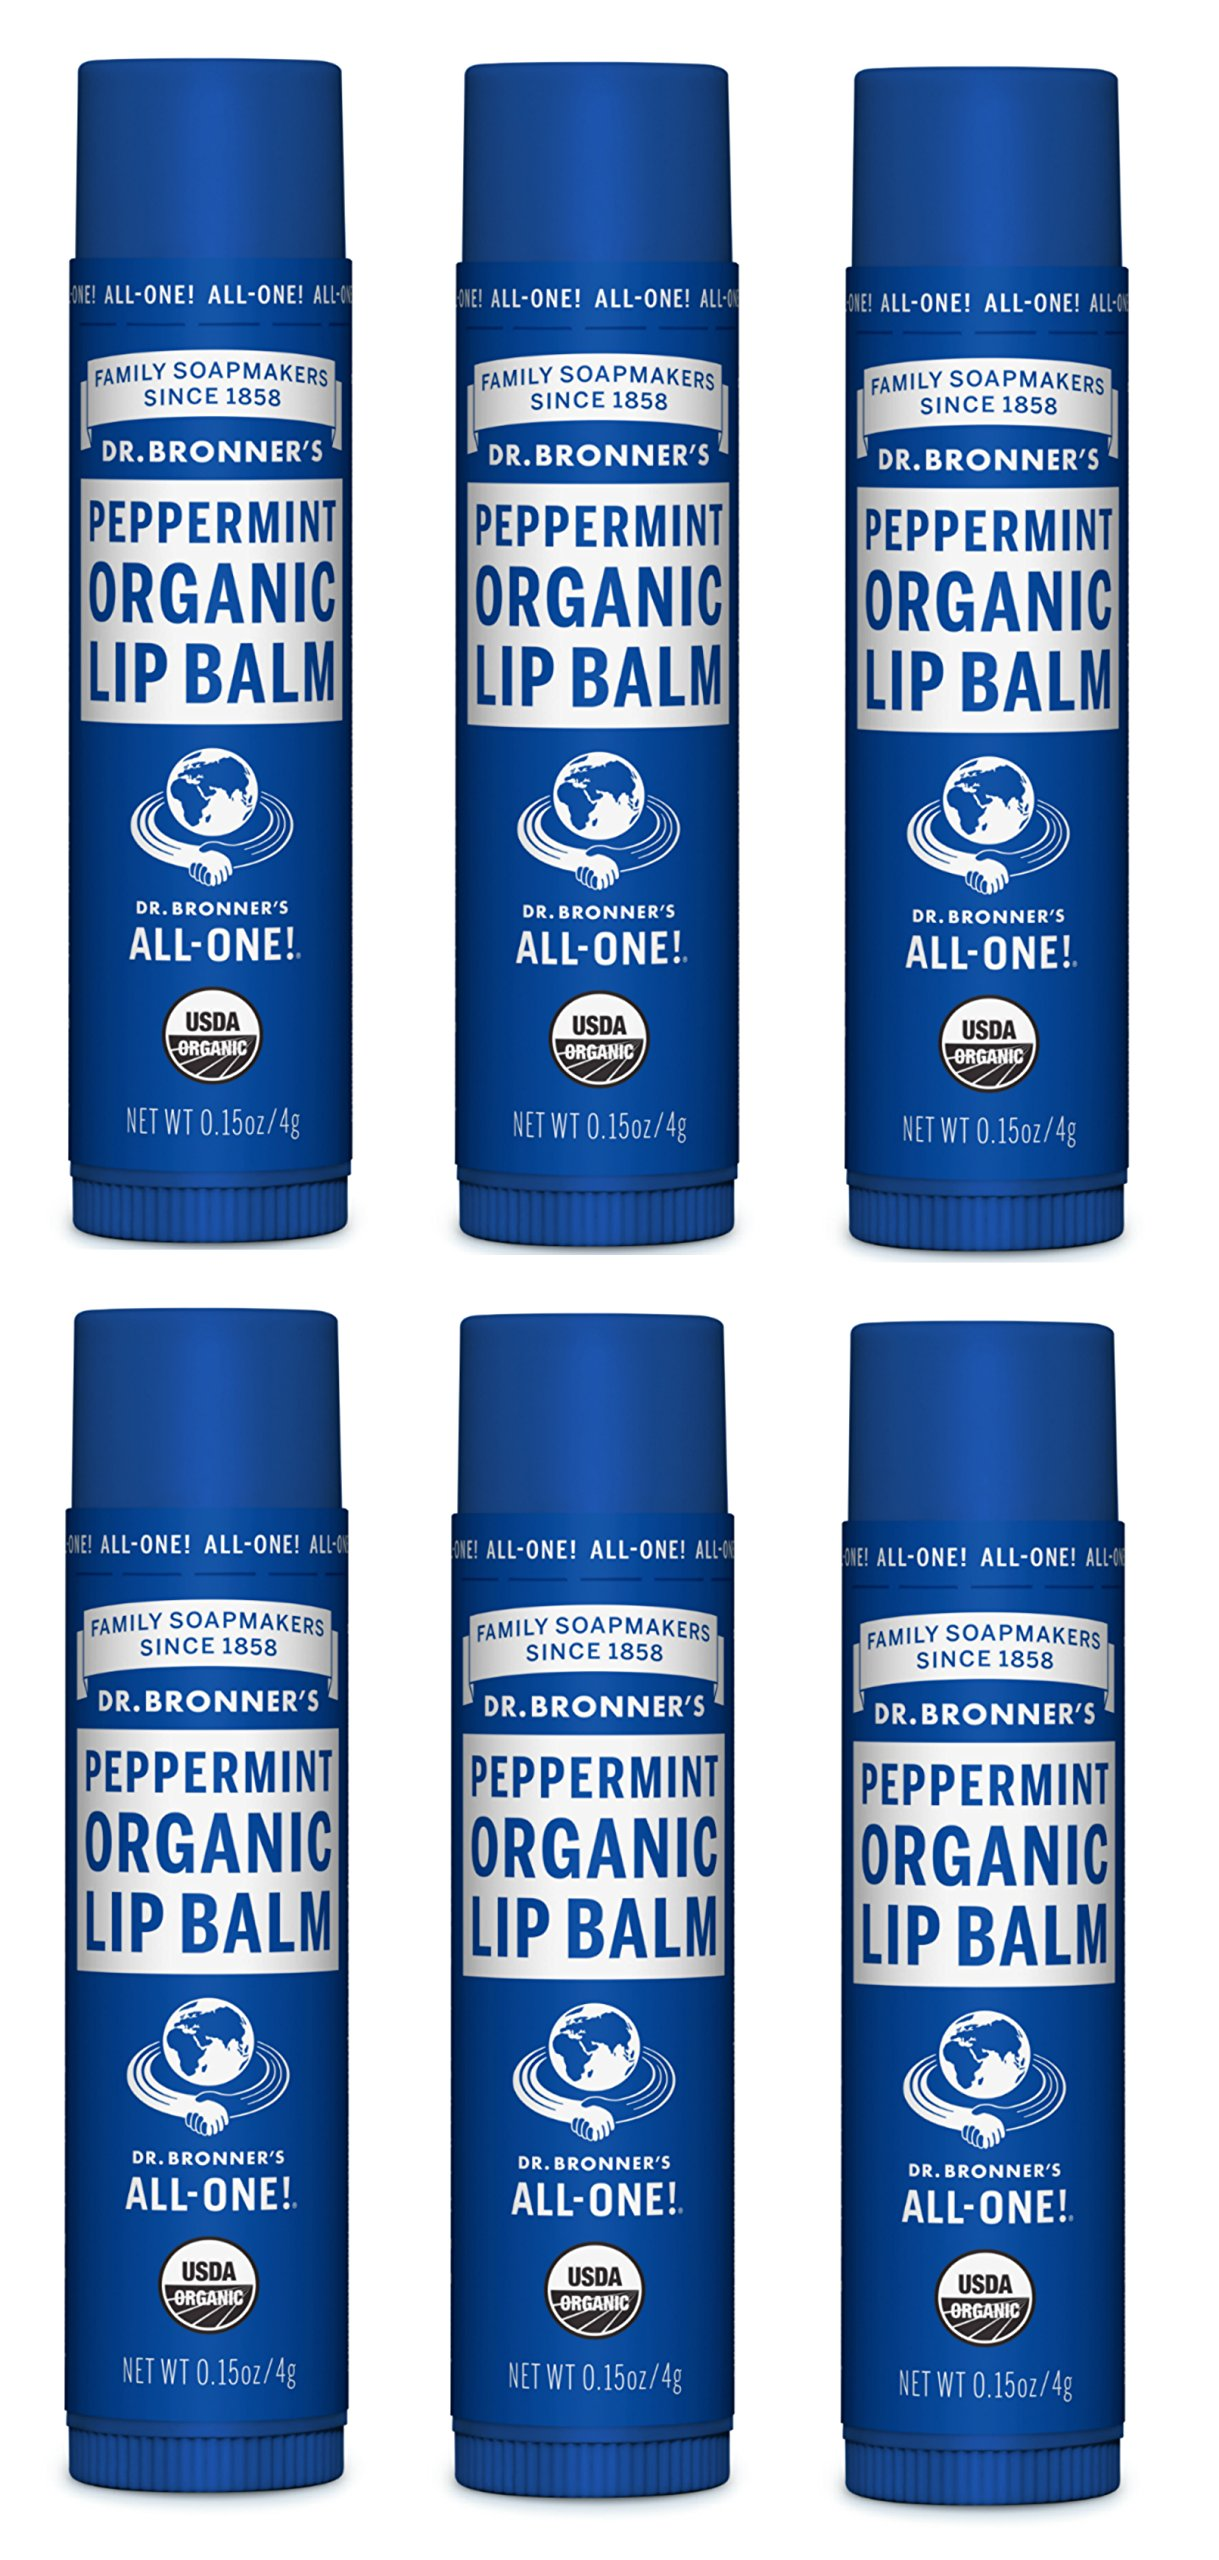 Organic Lip Balm Naked by dr bronners #22